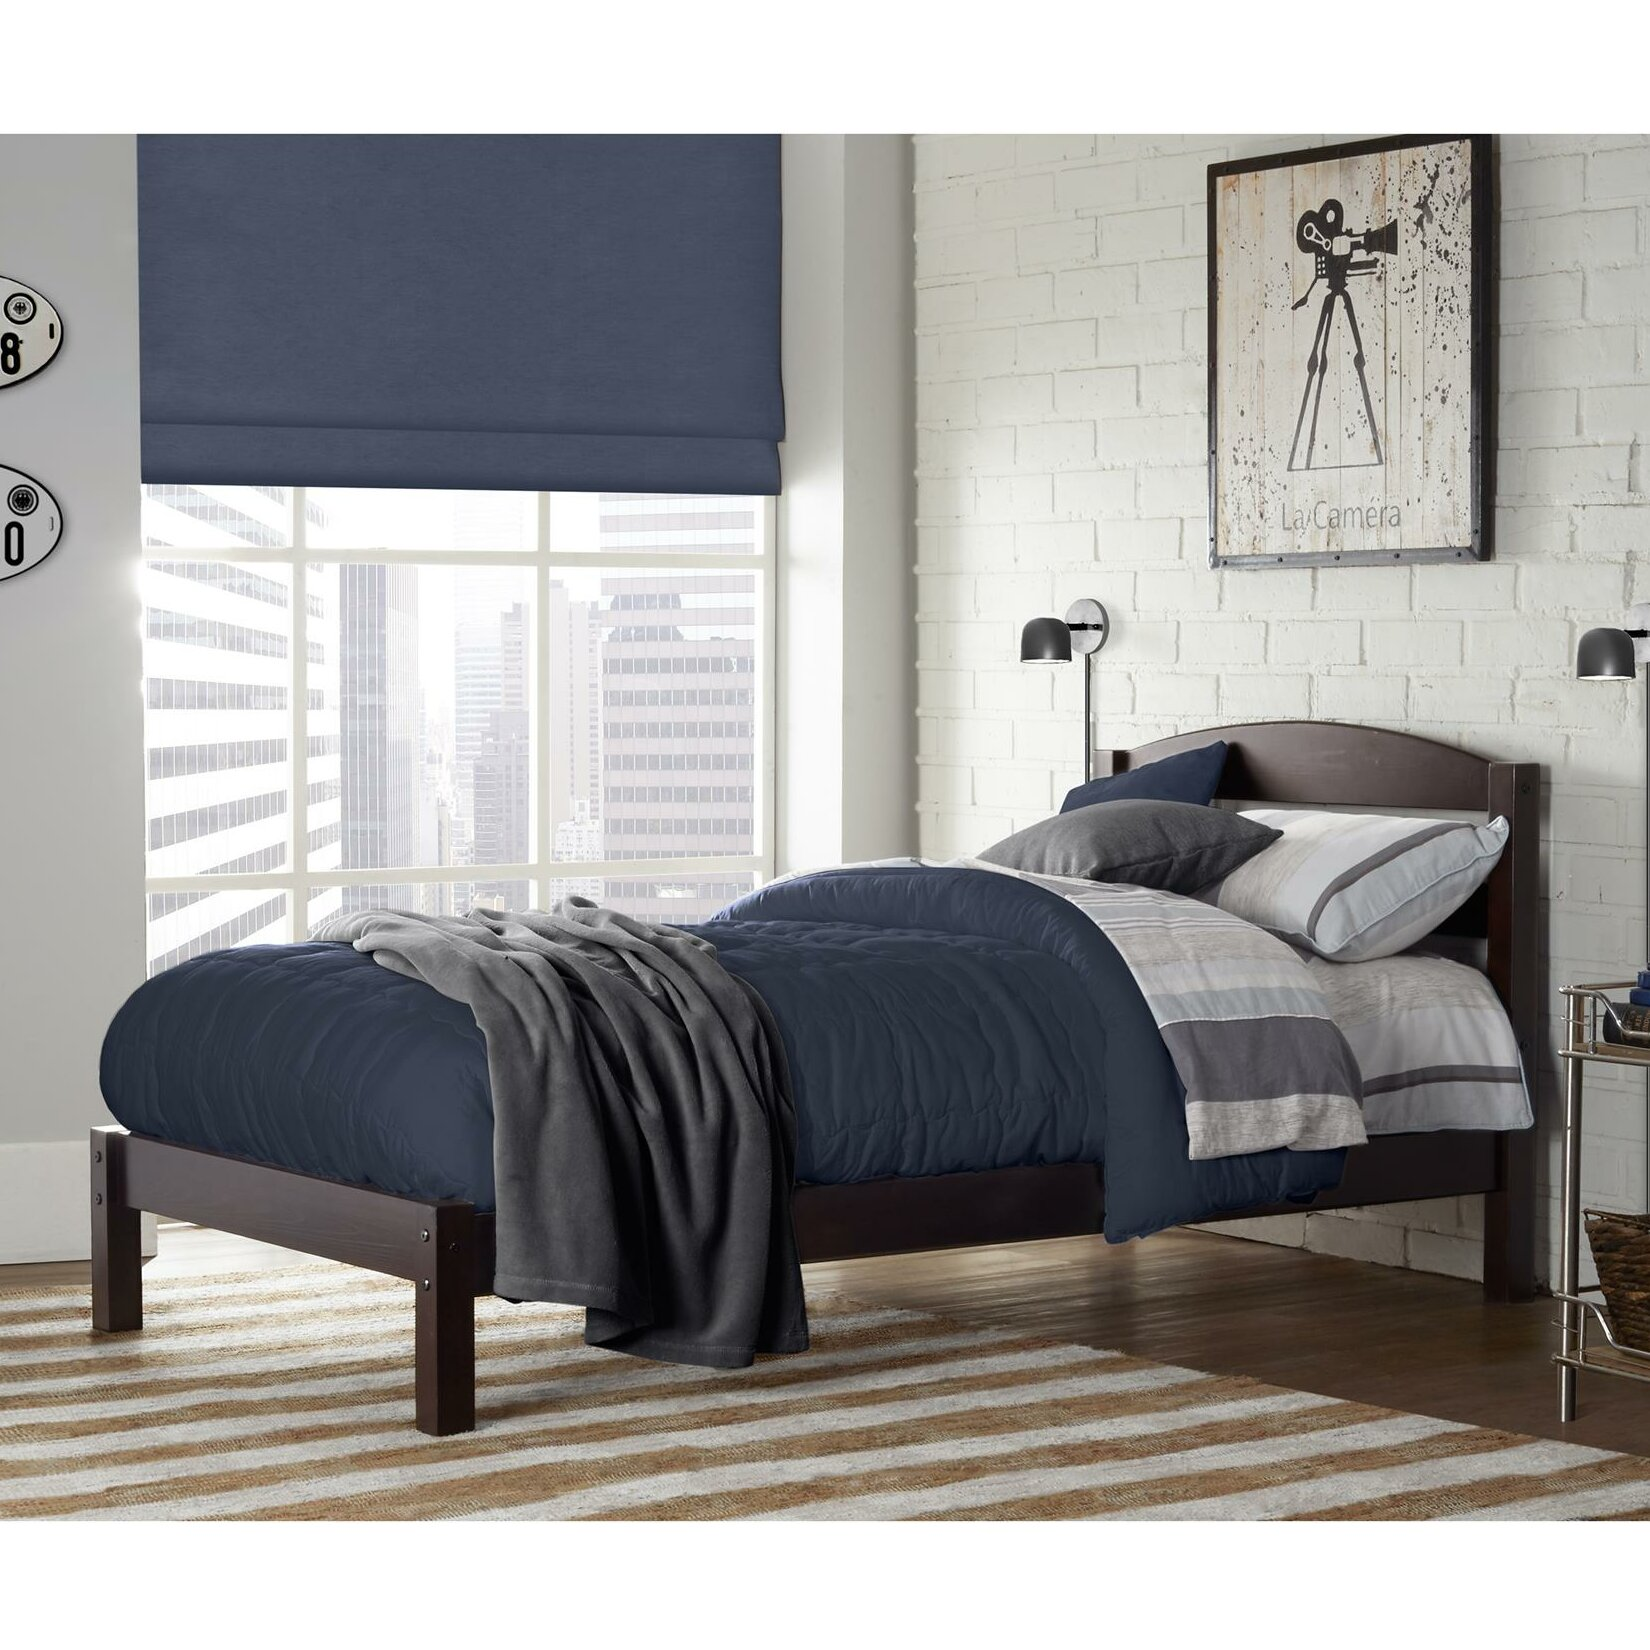 Boys' Beds You'll Love in 2021 » Wayfair